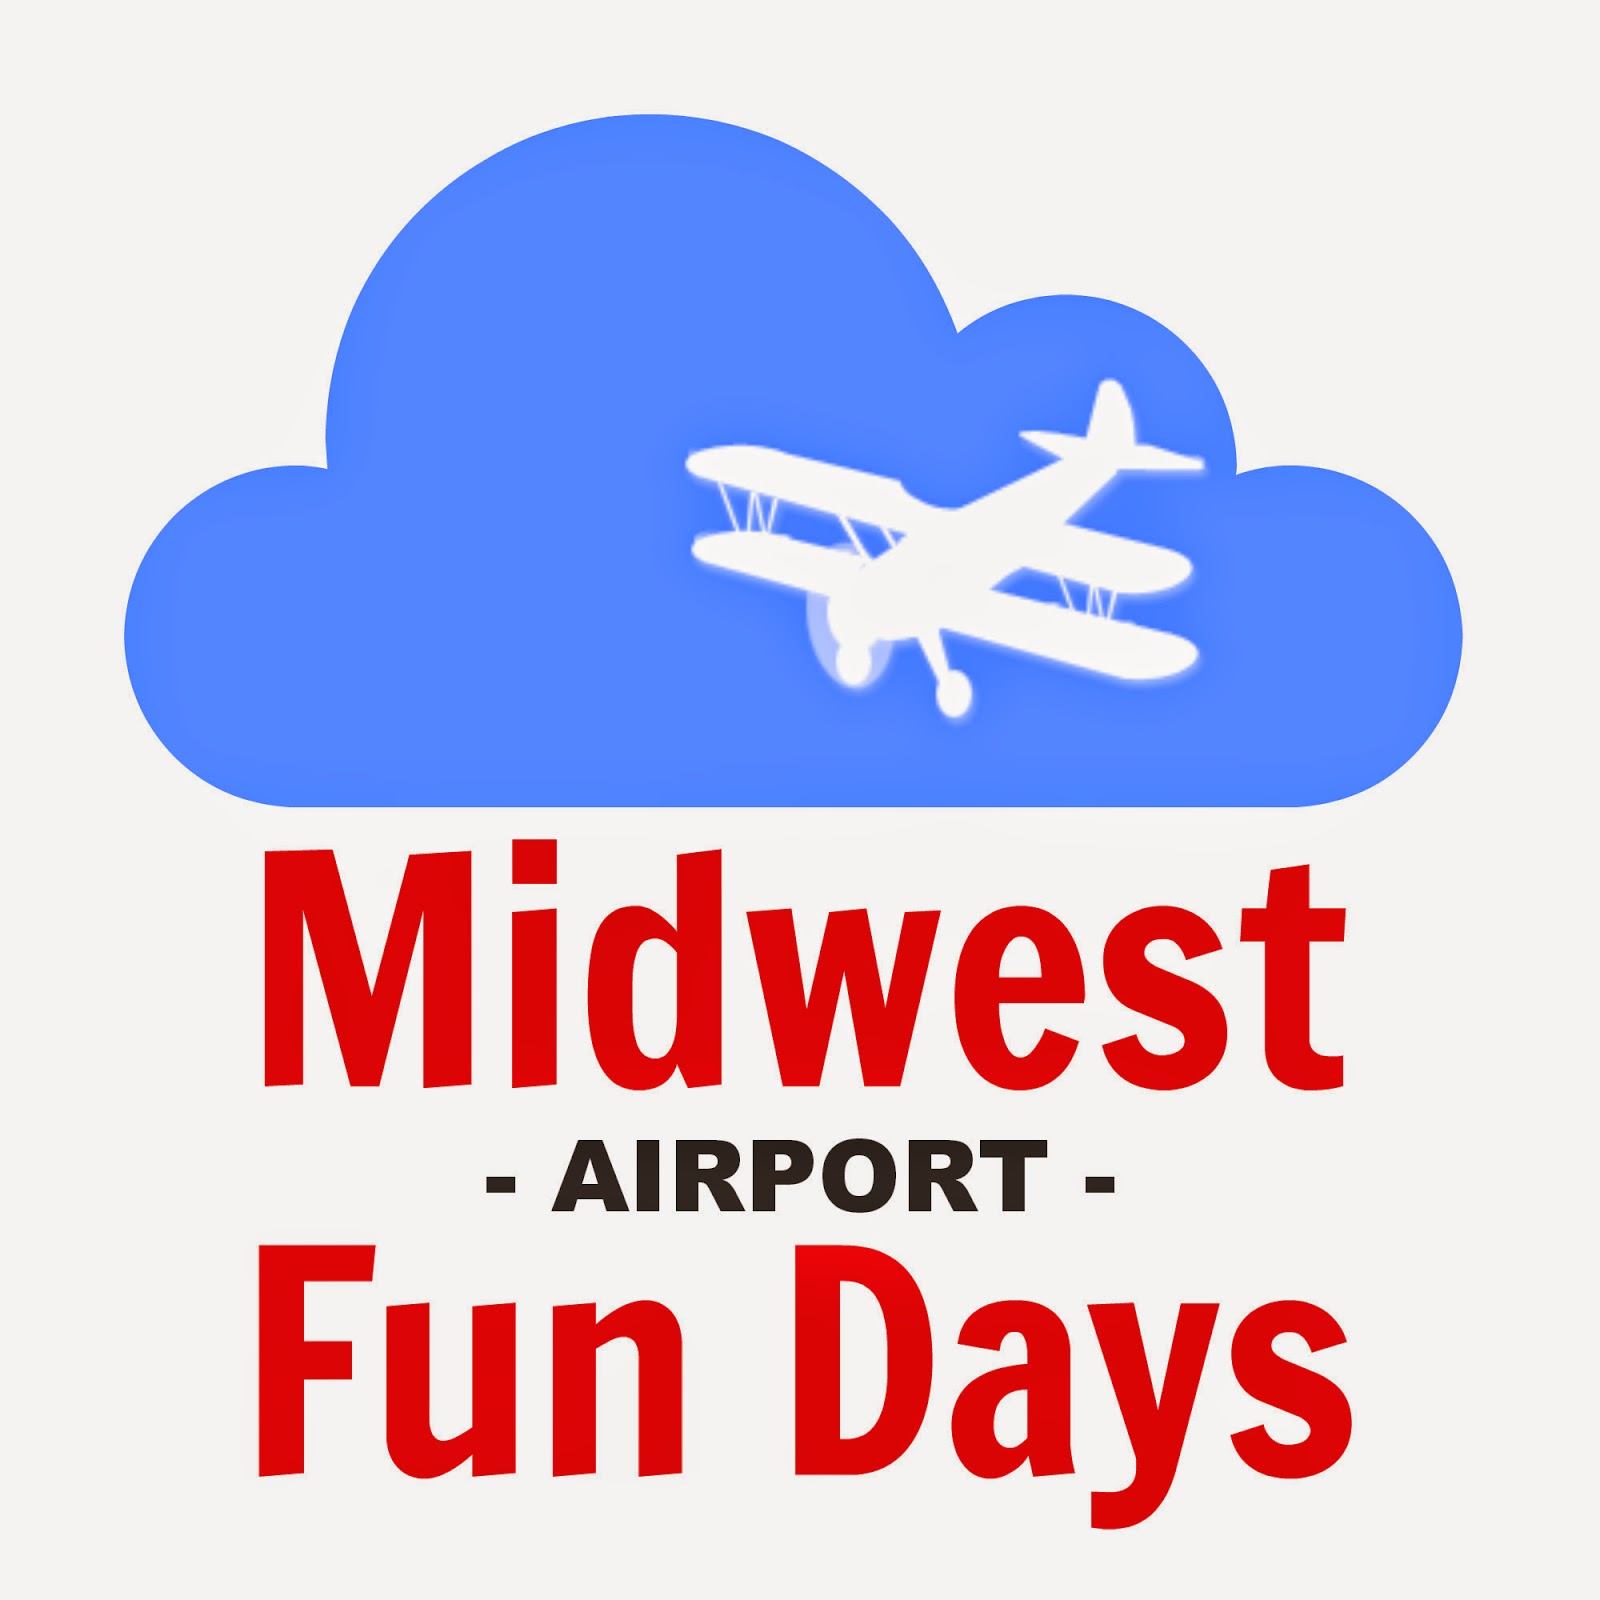 http://www.airandspacemuseum.org/fun-days.php